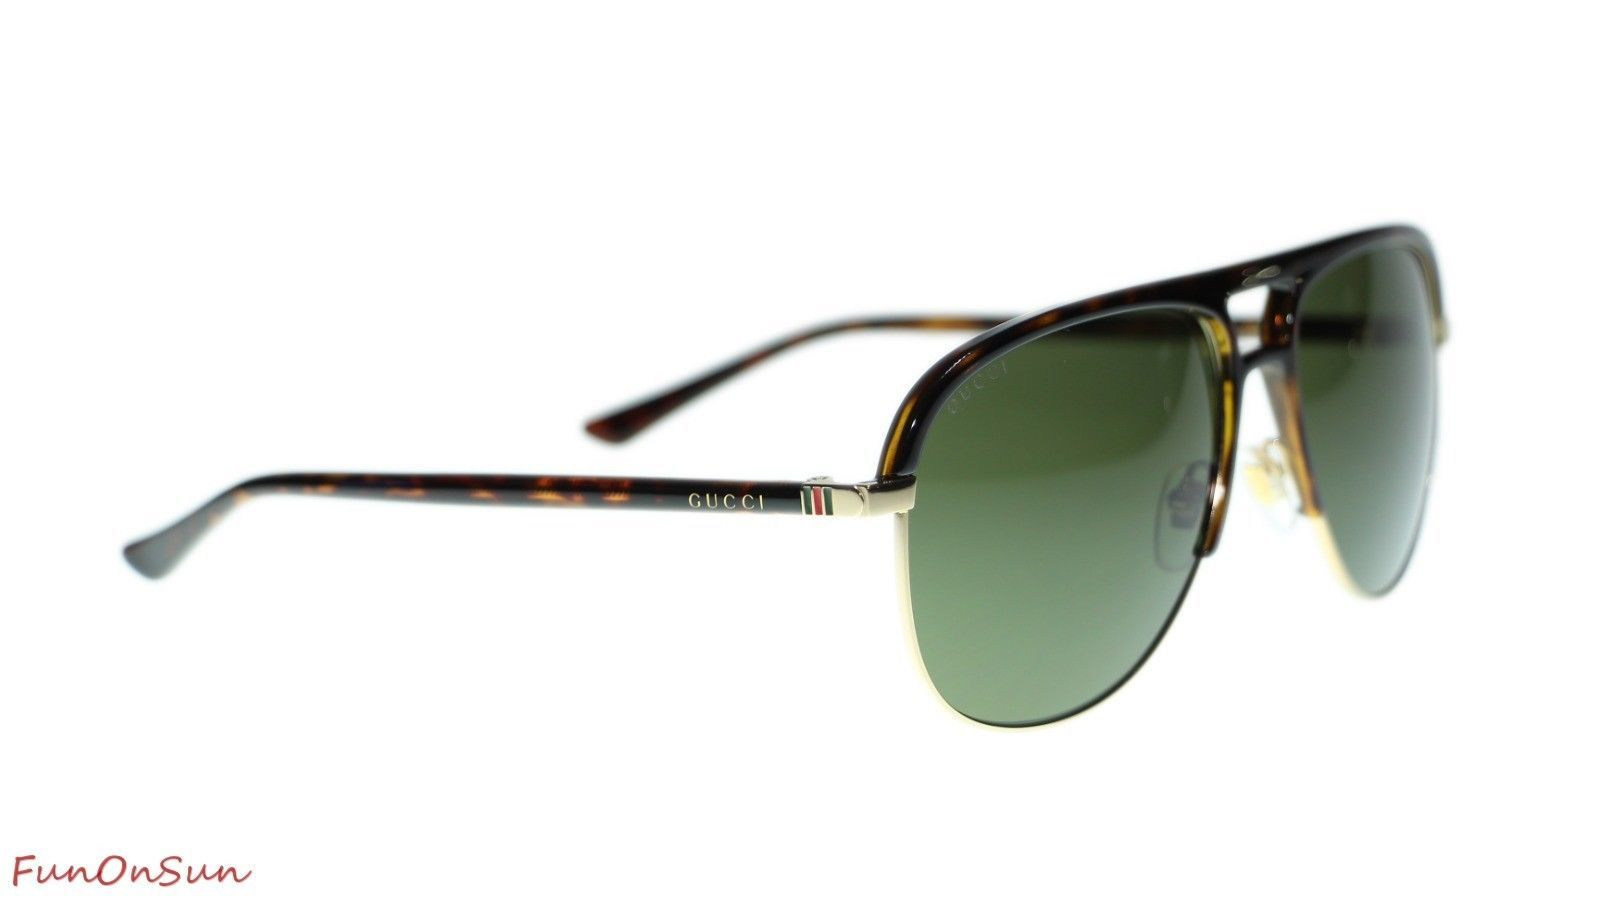 a31504e66fc0 NEW Gucci Men's Sunglasses GG0292S 003 Havana Green Lens Pilot 60mm  Authentic